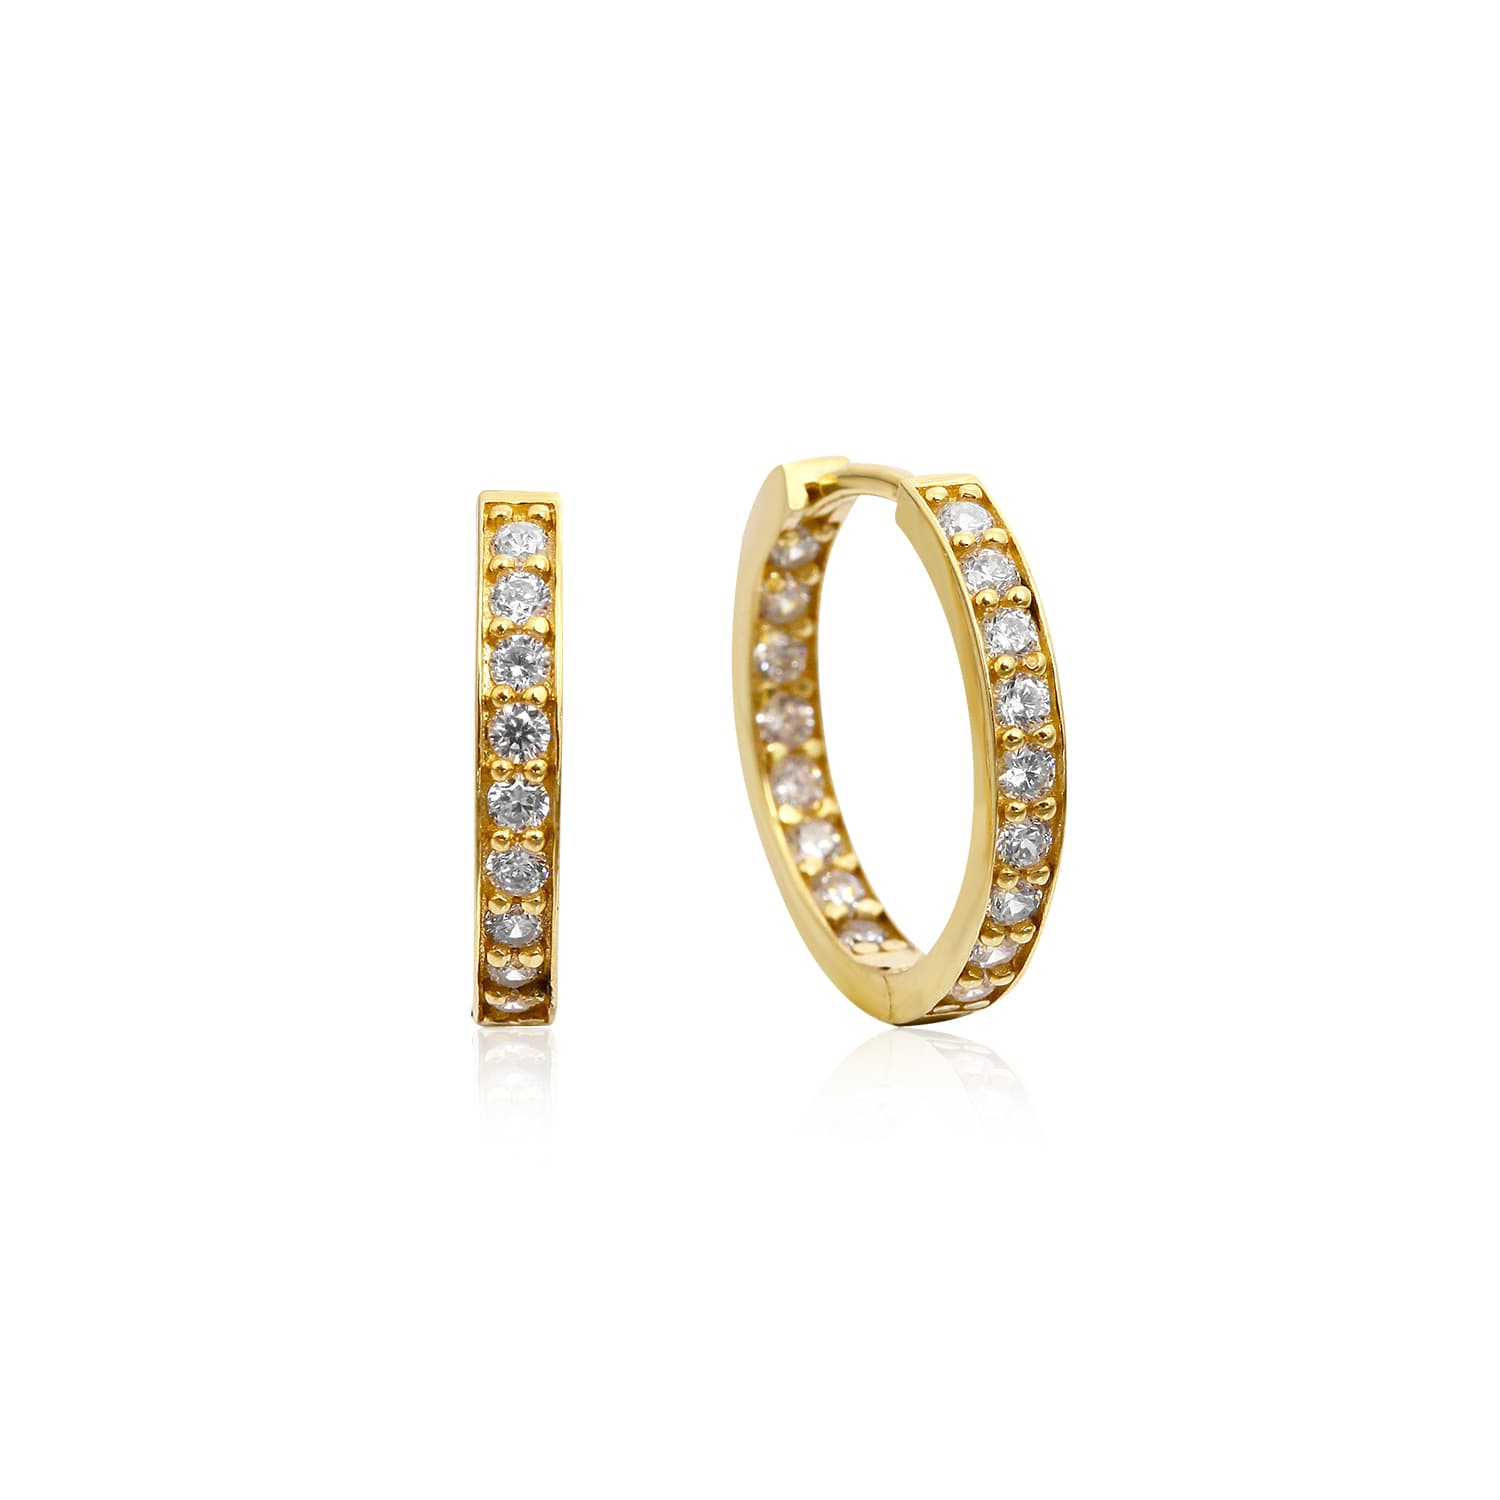 MIDI DOUBLE SIDED STONE RING EARRING 12.5MM